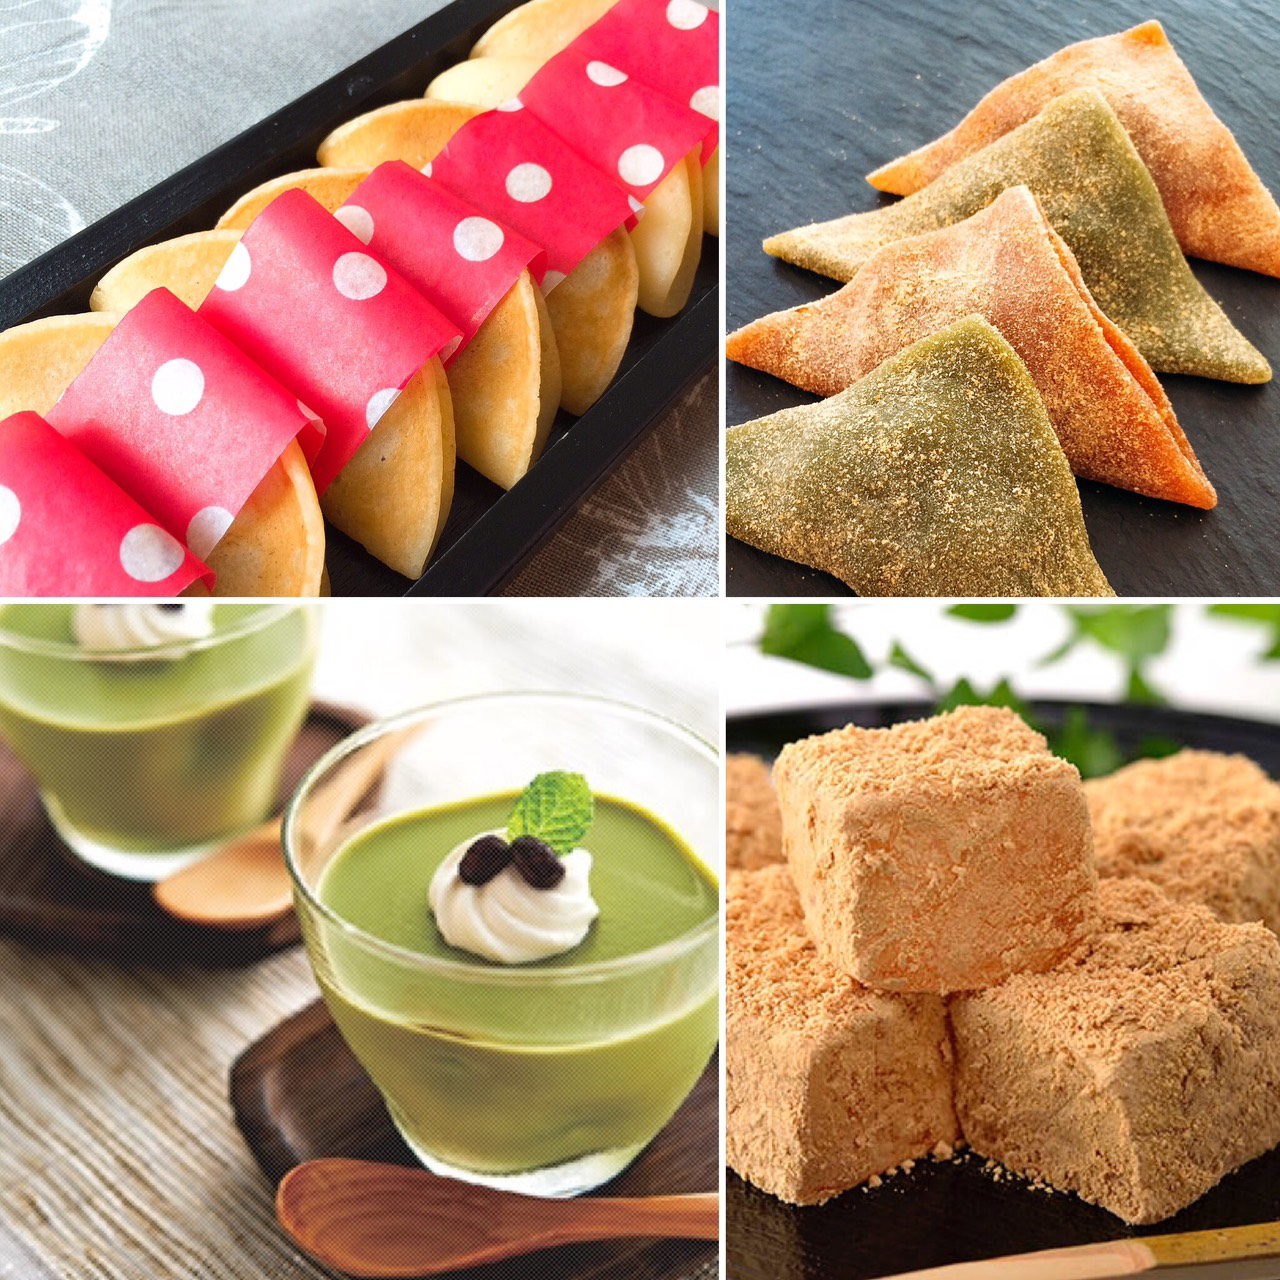 Japanese Sweets class